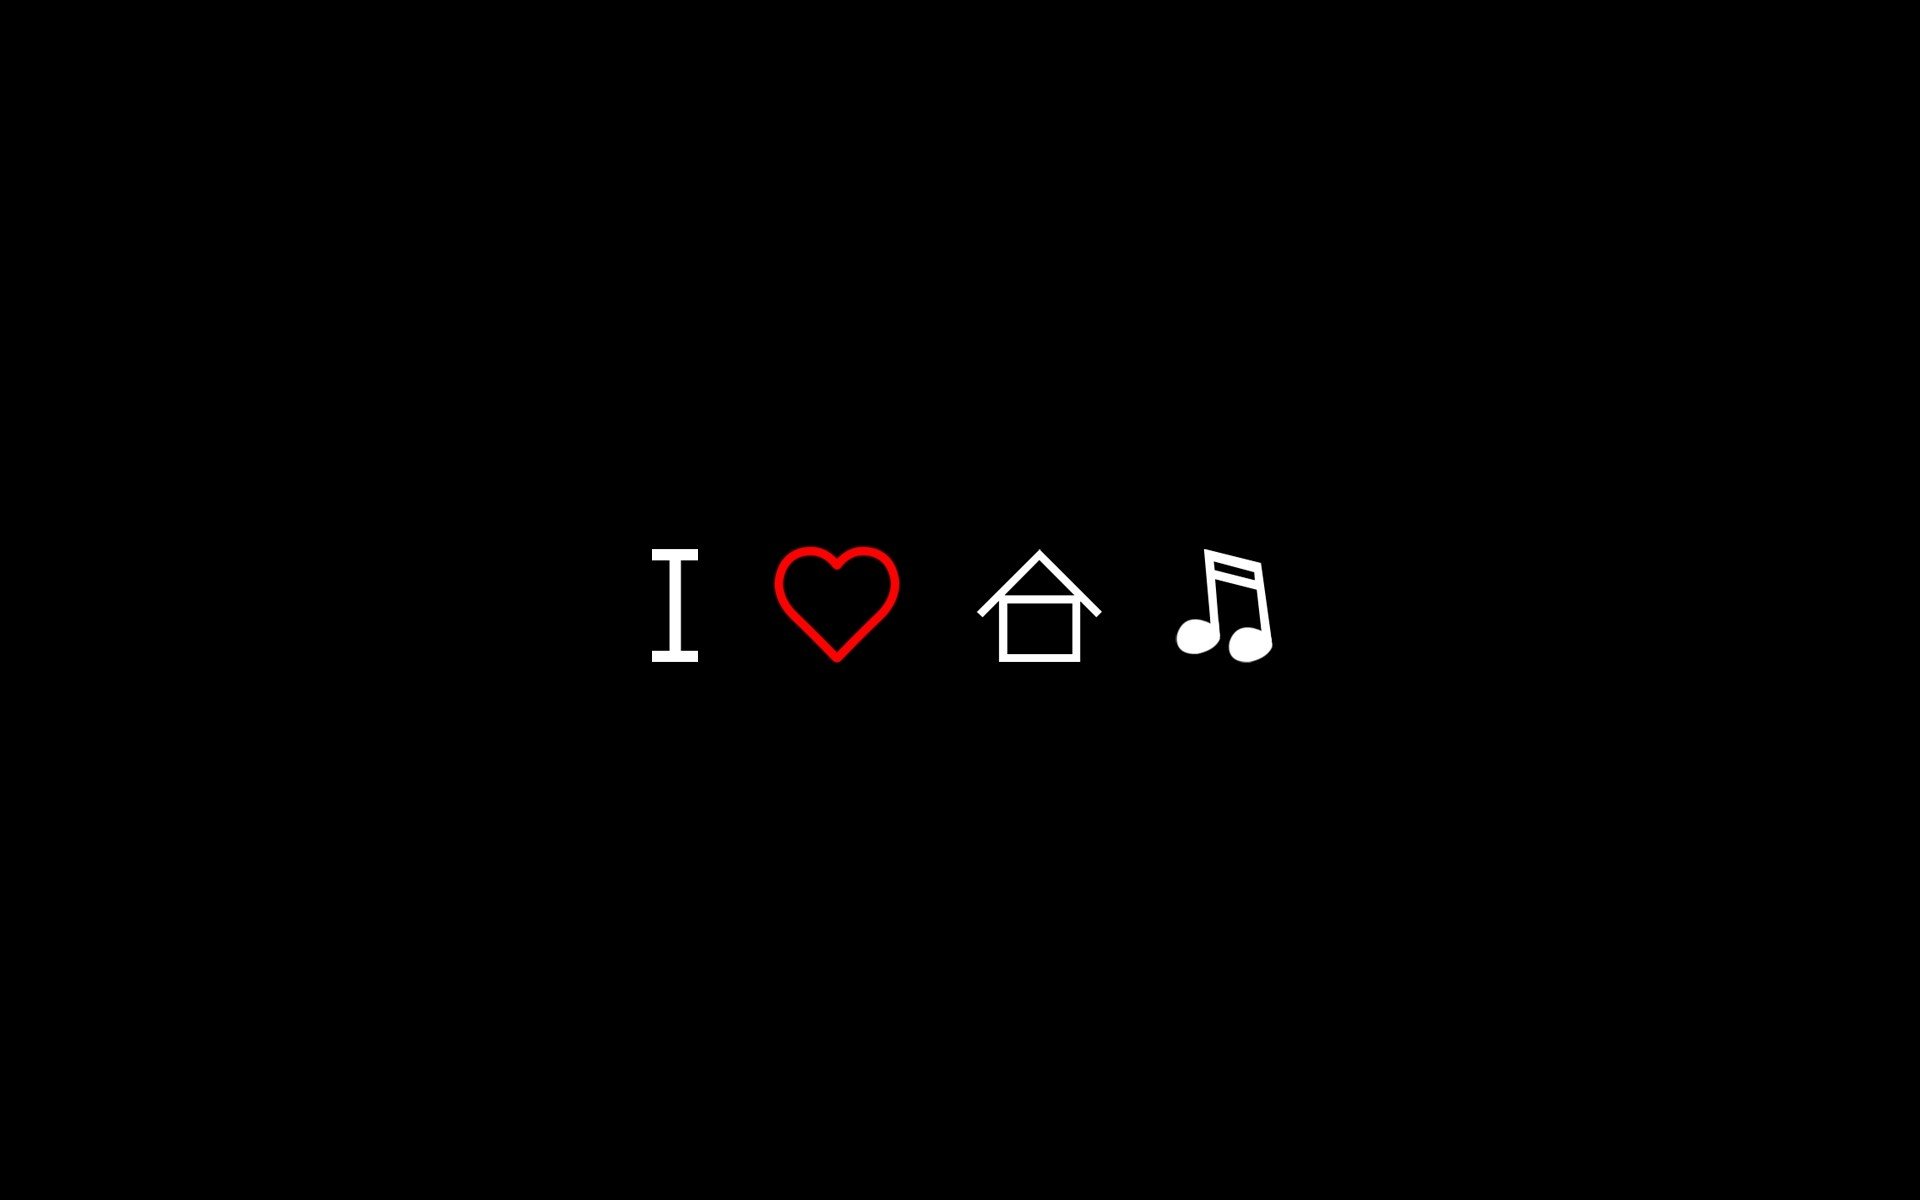 Love House Music Wallpapers, I Love House Music Myspace Backgrounds .